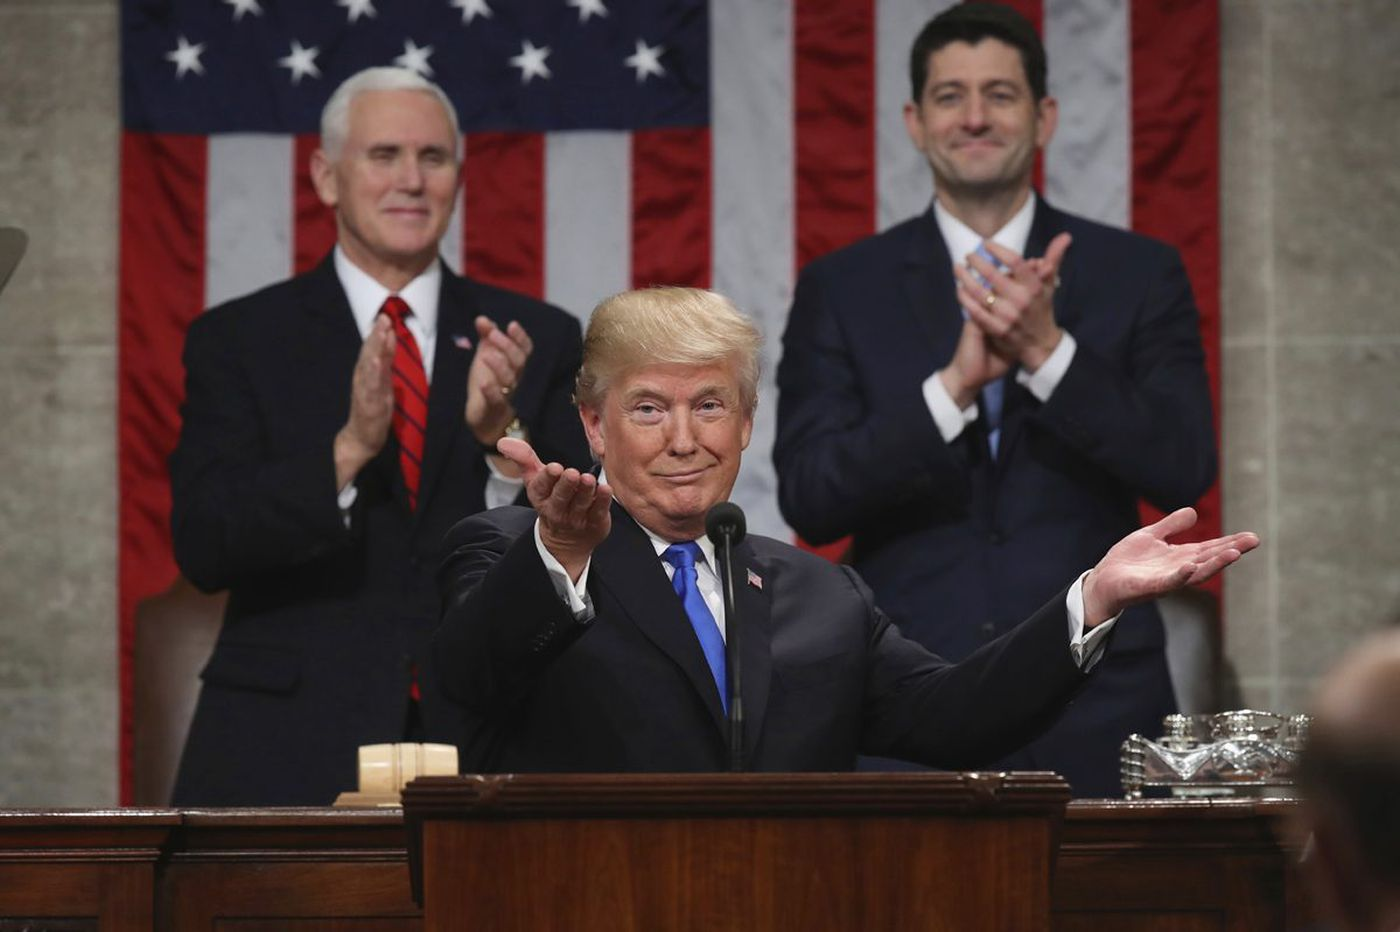 Trump and his teleprompter assure America that the State of the Union is strong. No, really | Will Bunch